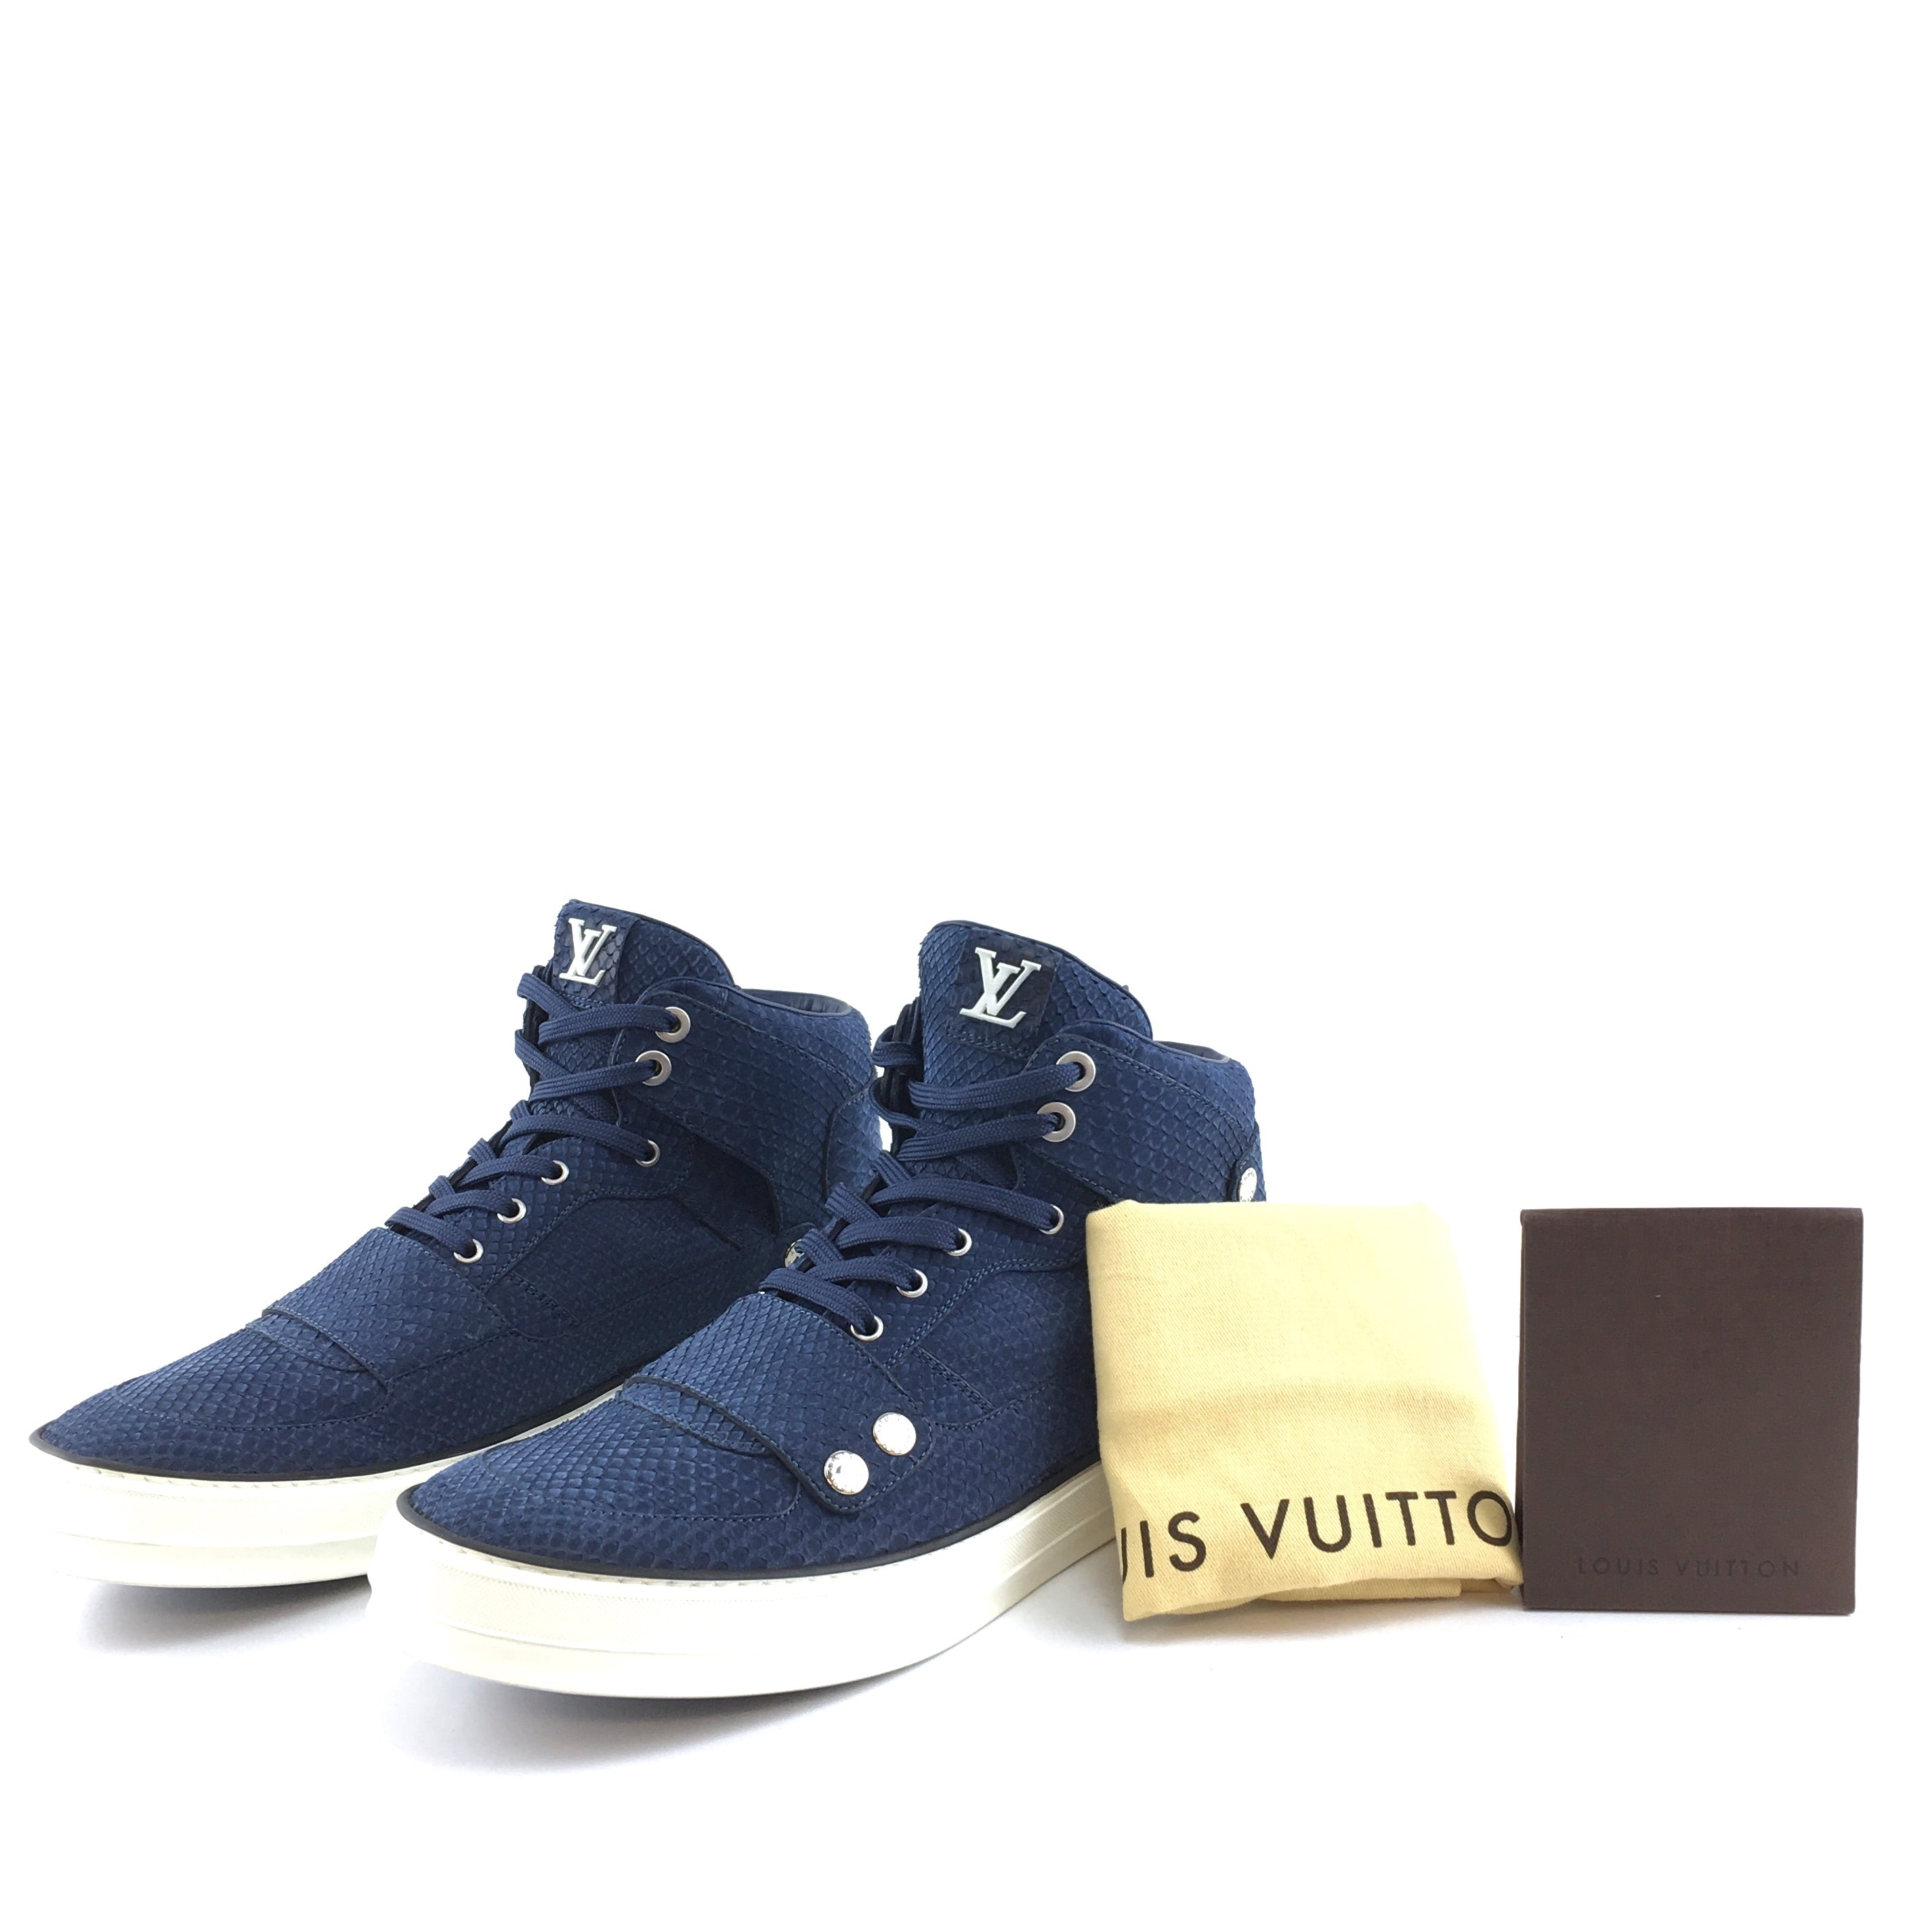 Louis Vuitton California Limited Blue Python Skin Sneakers